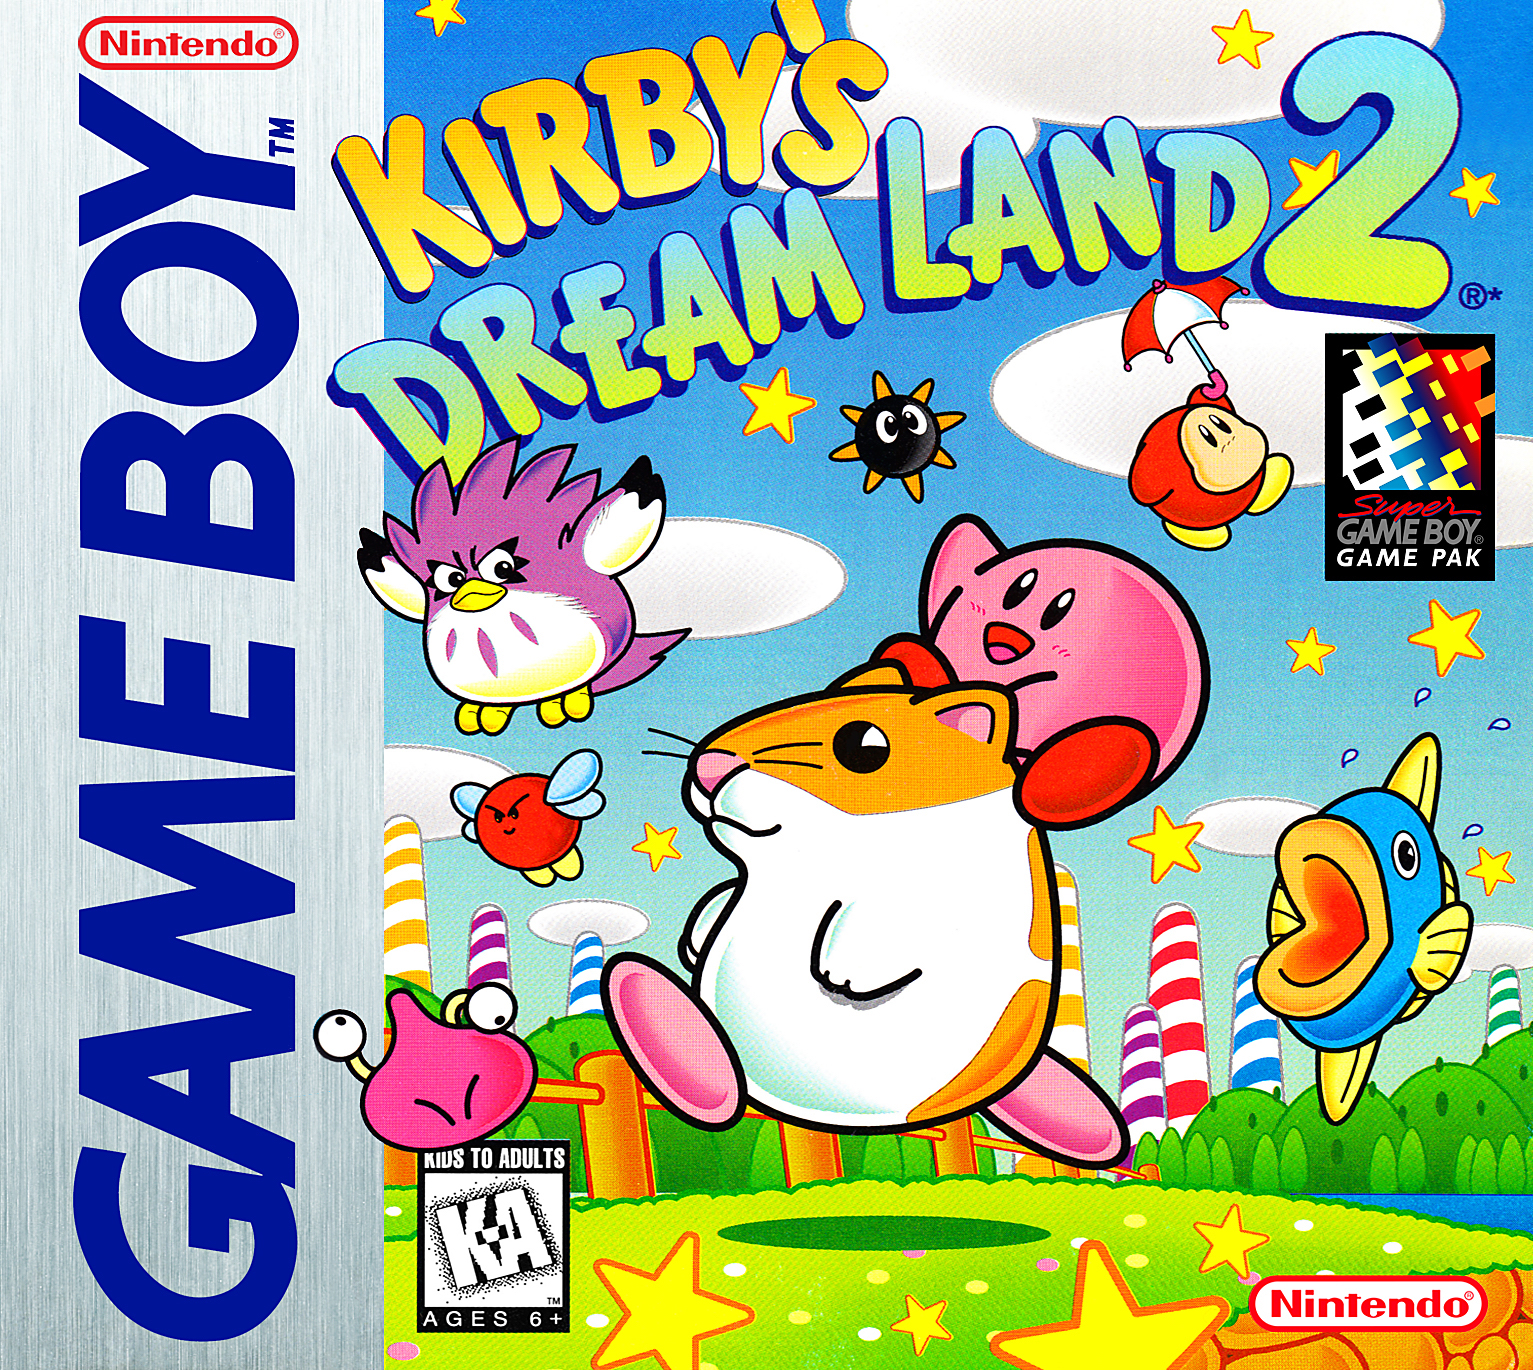 Box artwork for Kirby's Dream Land 2.